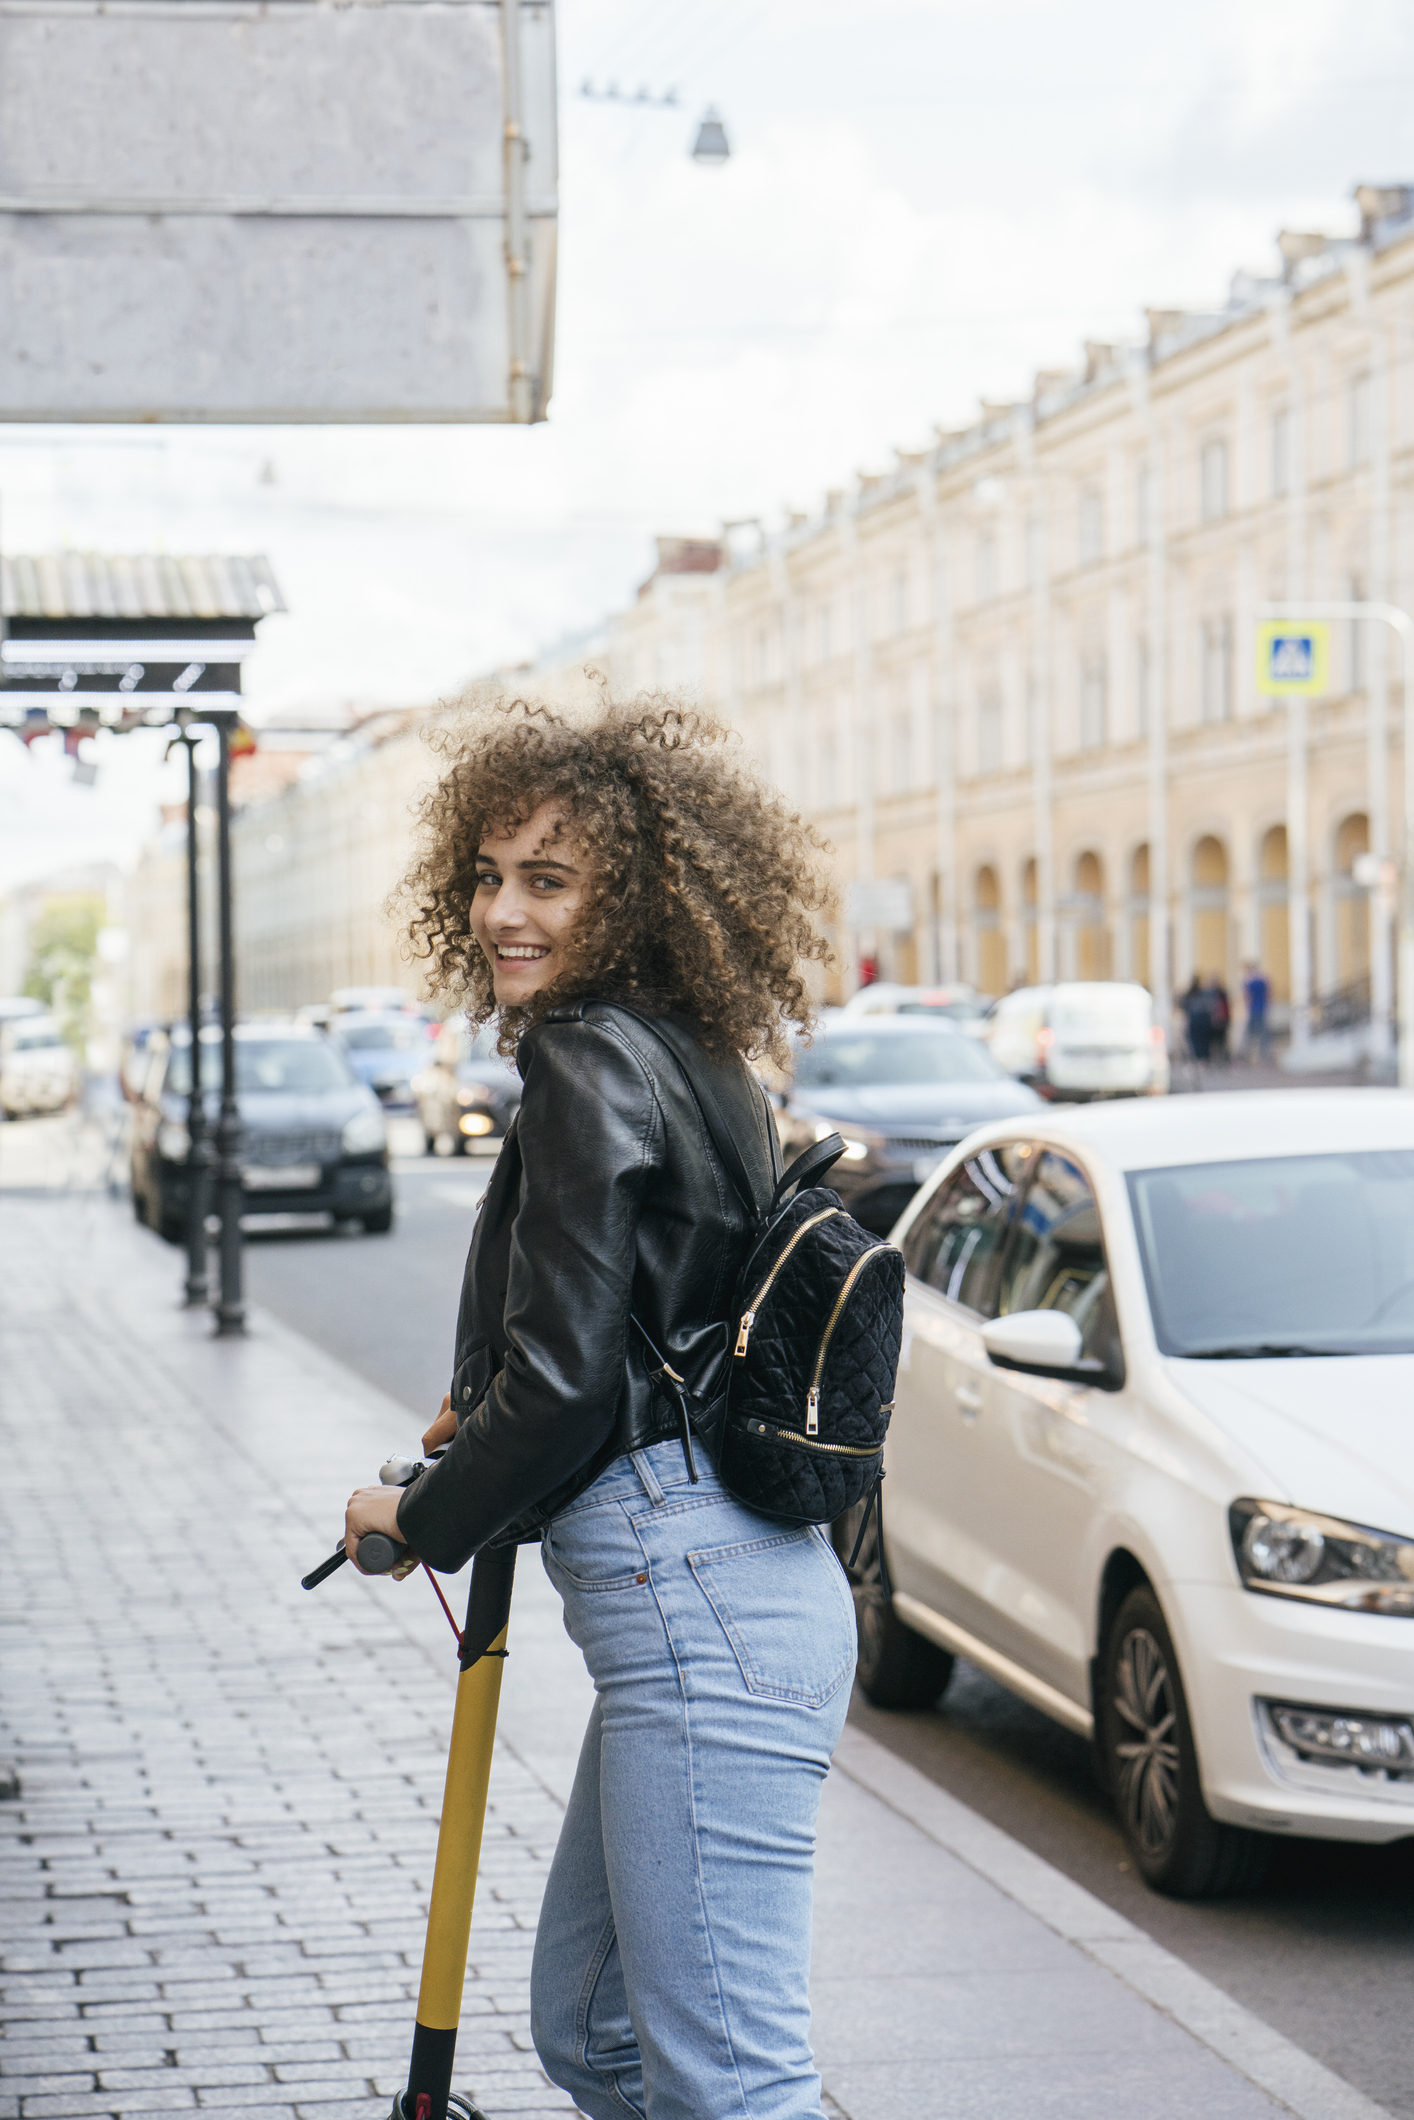 Portrait of smiling teenage girl with scooter standing on pavement